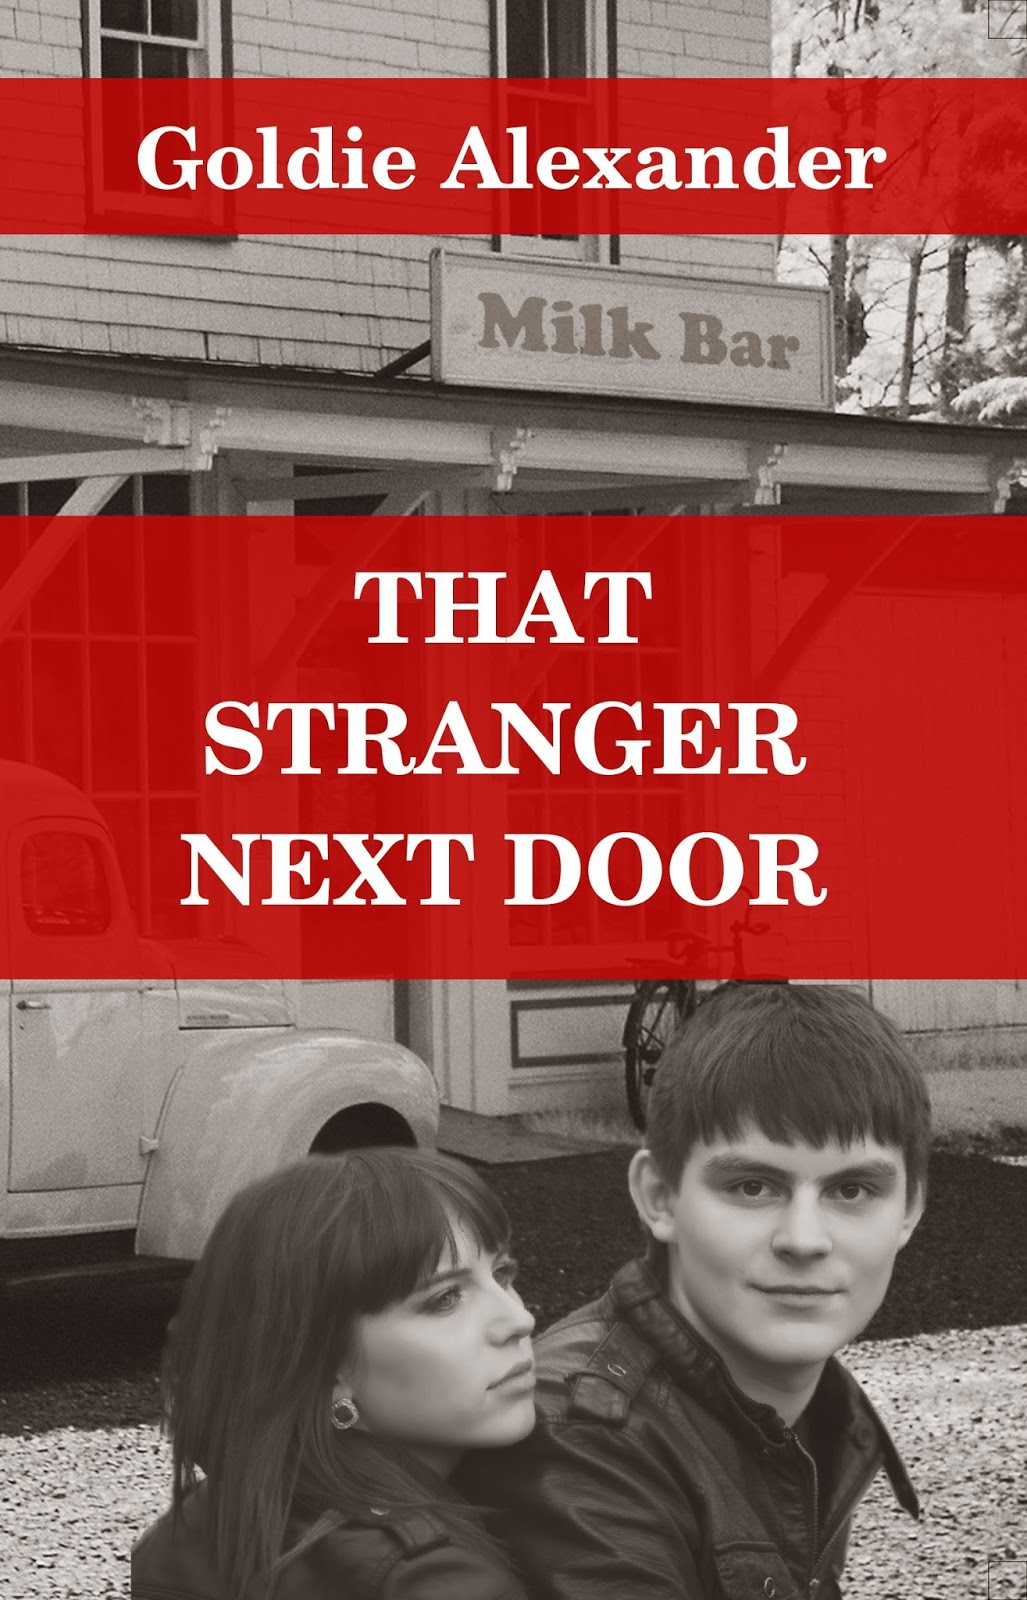 stranger next door